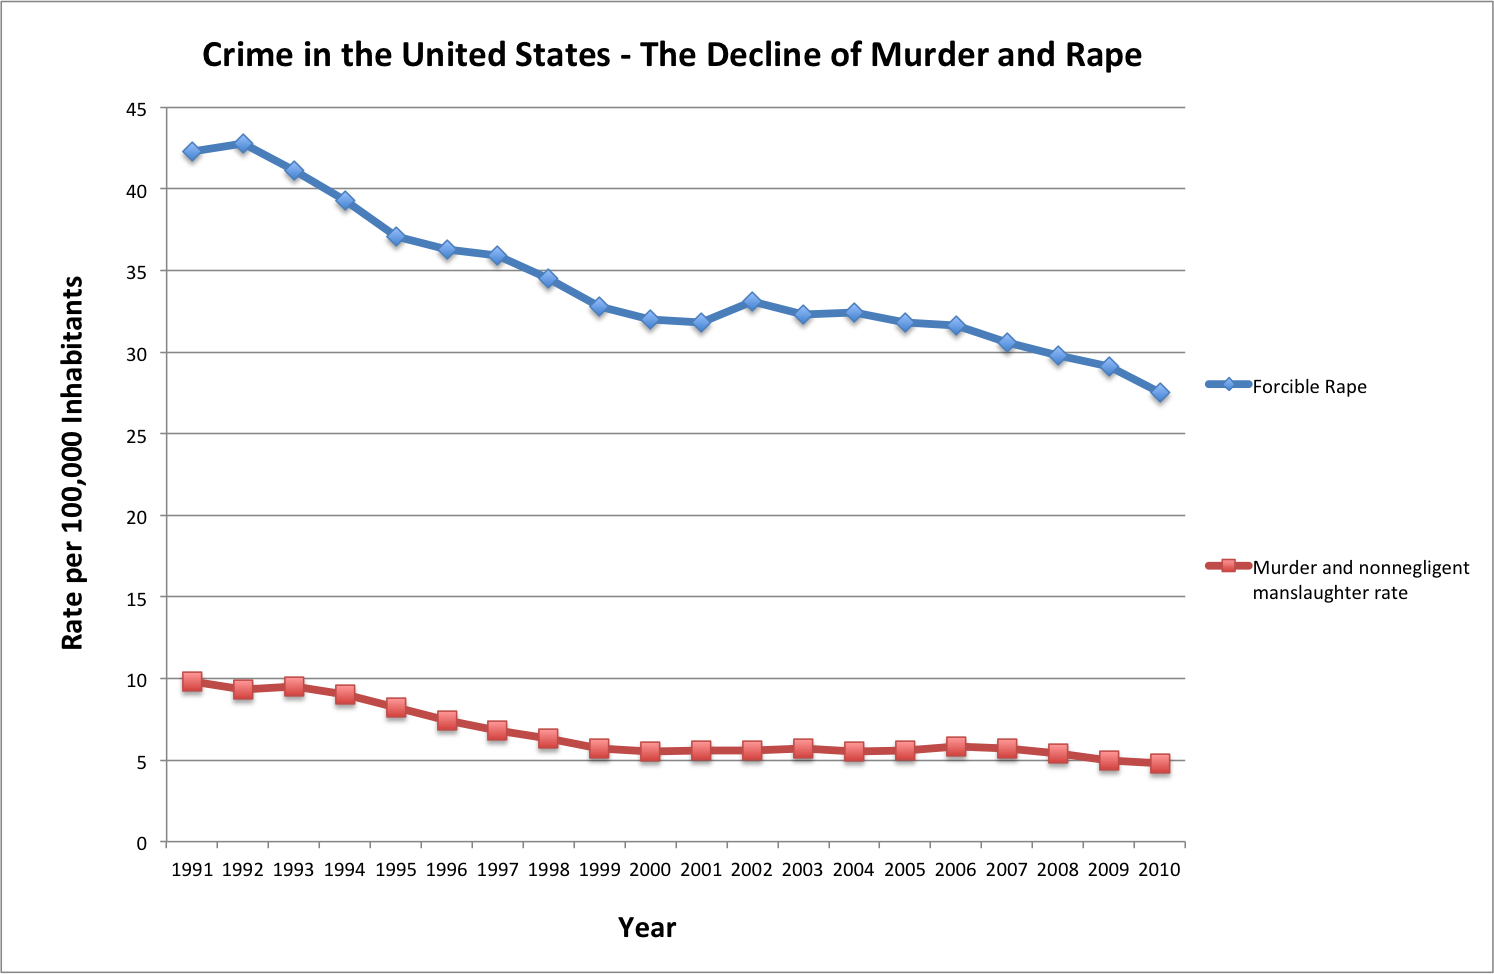 Decline of Murder and Rape